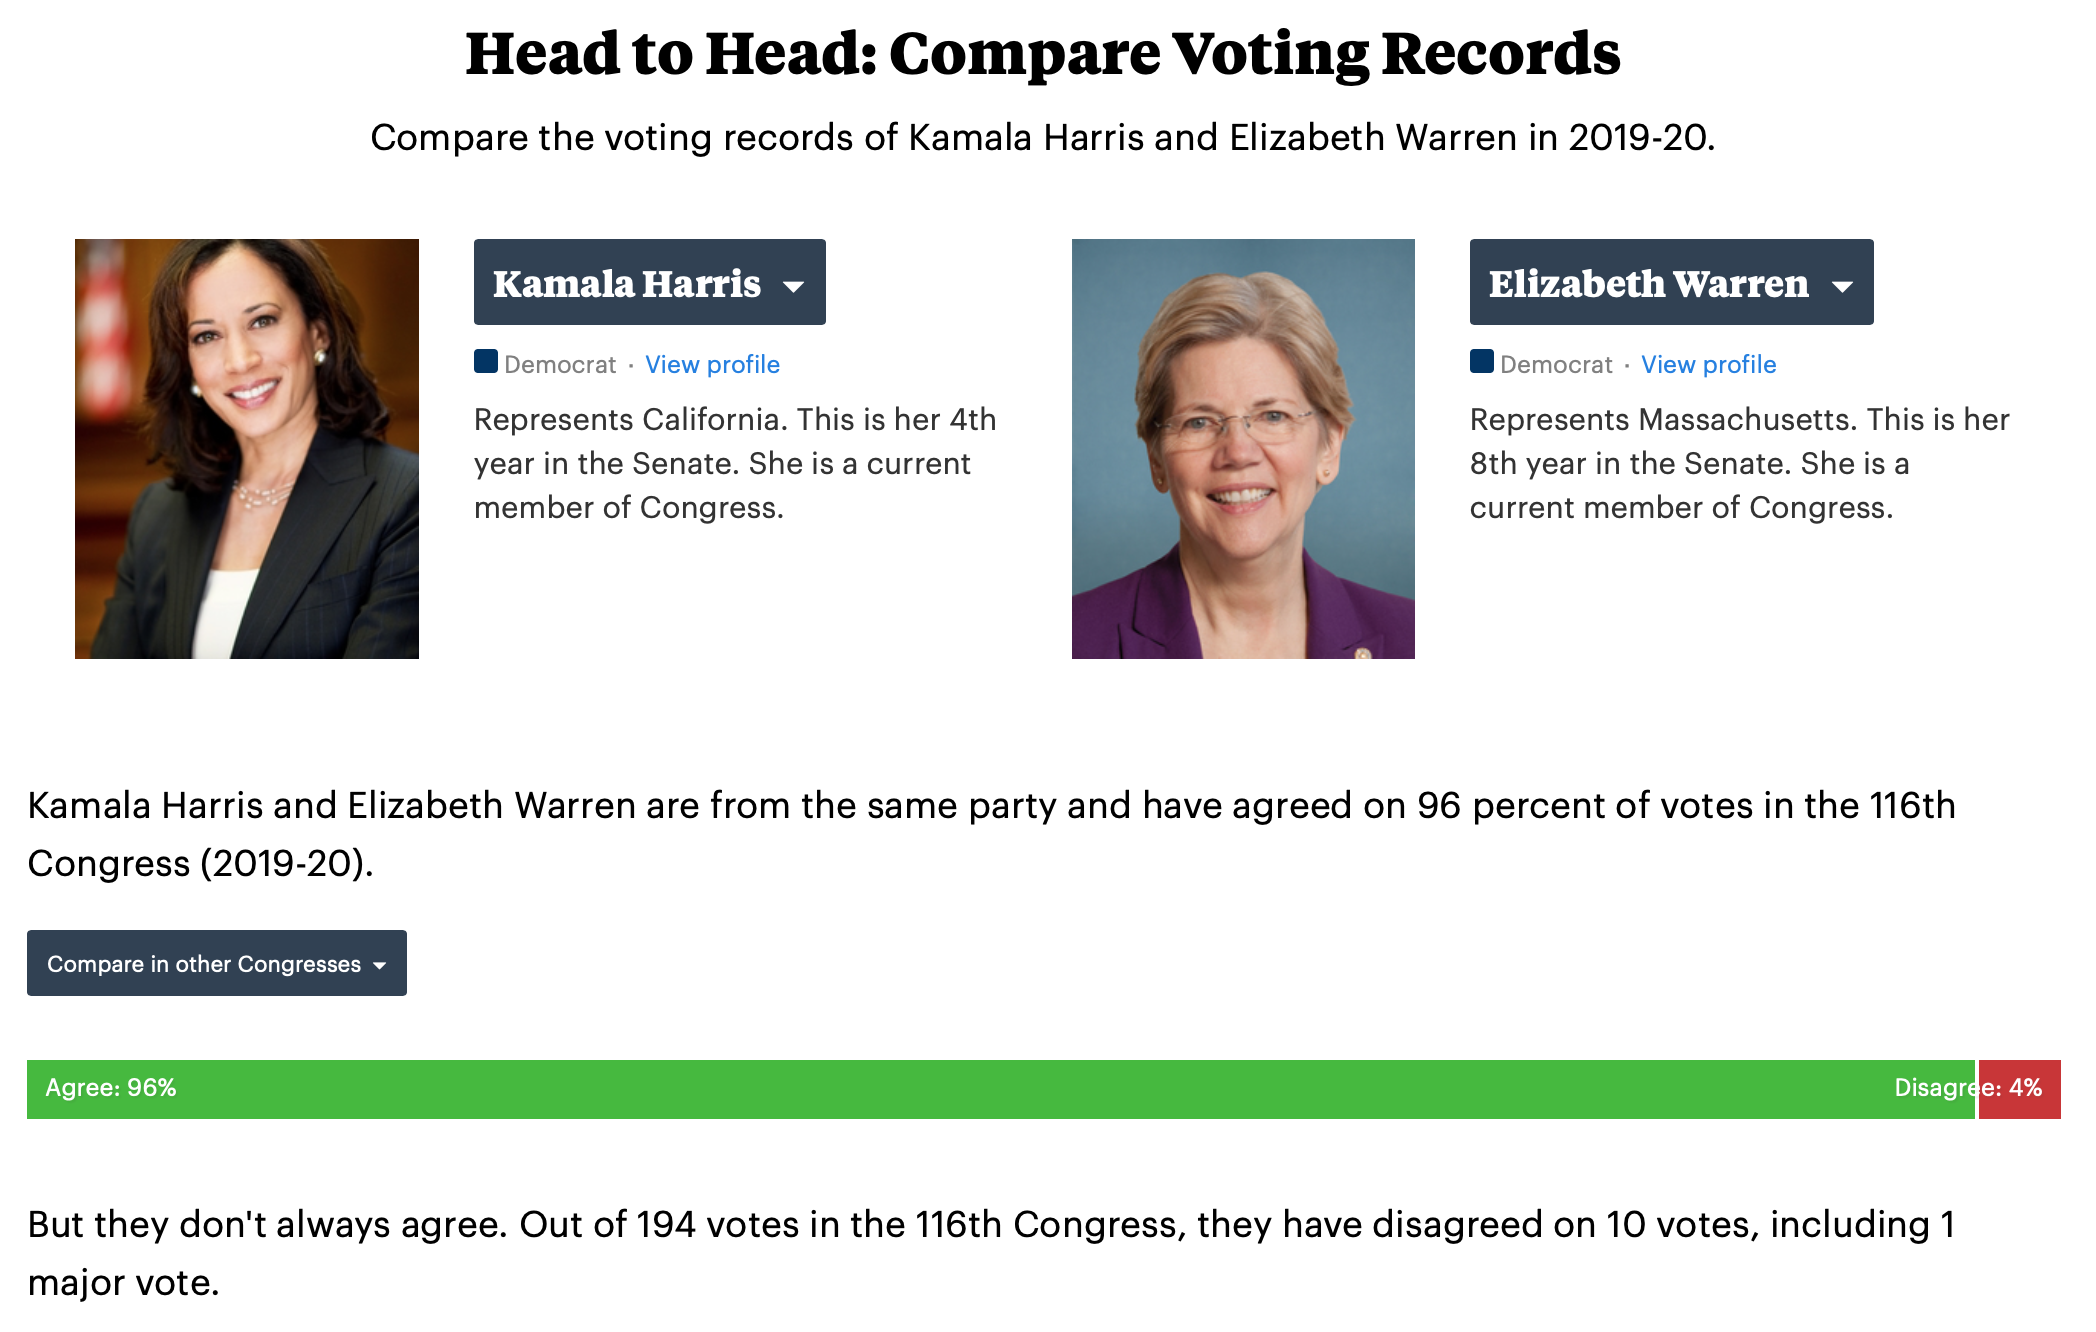 Harris v. Warren